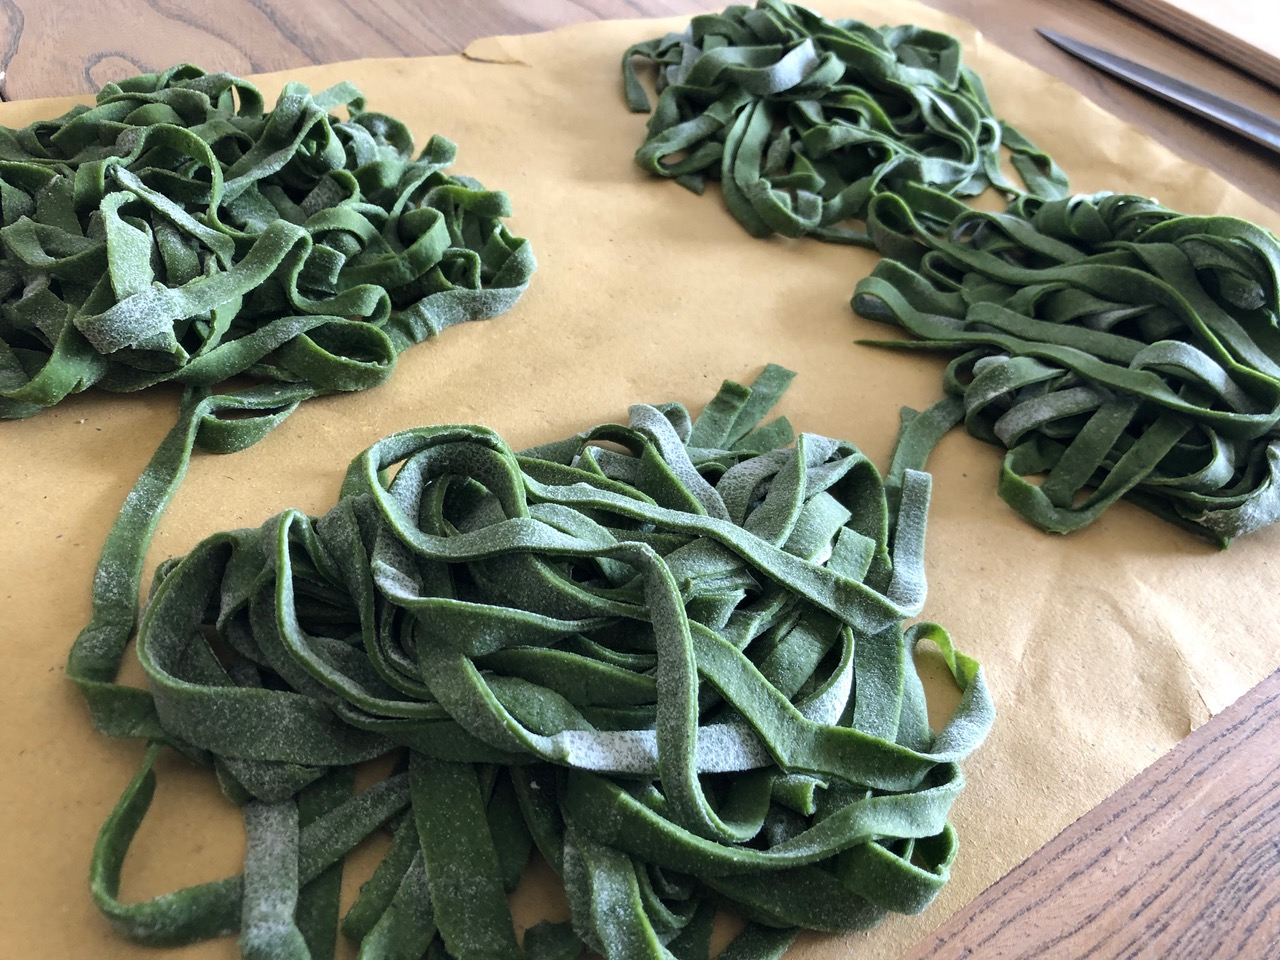 Homemade Tagliatelle with Nettles